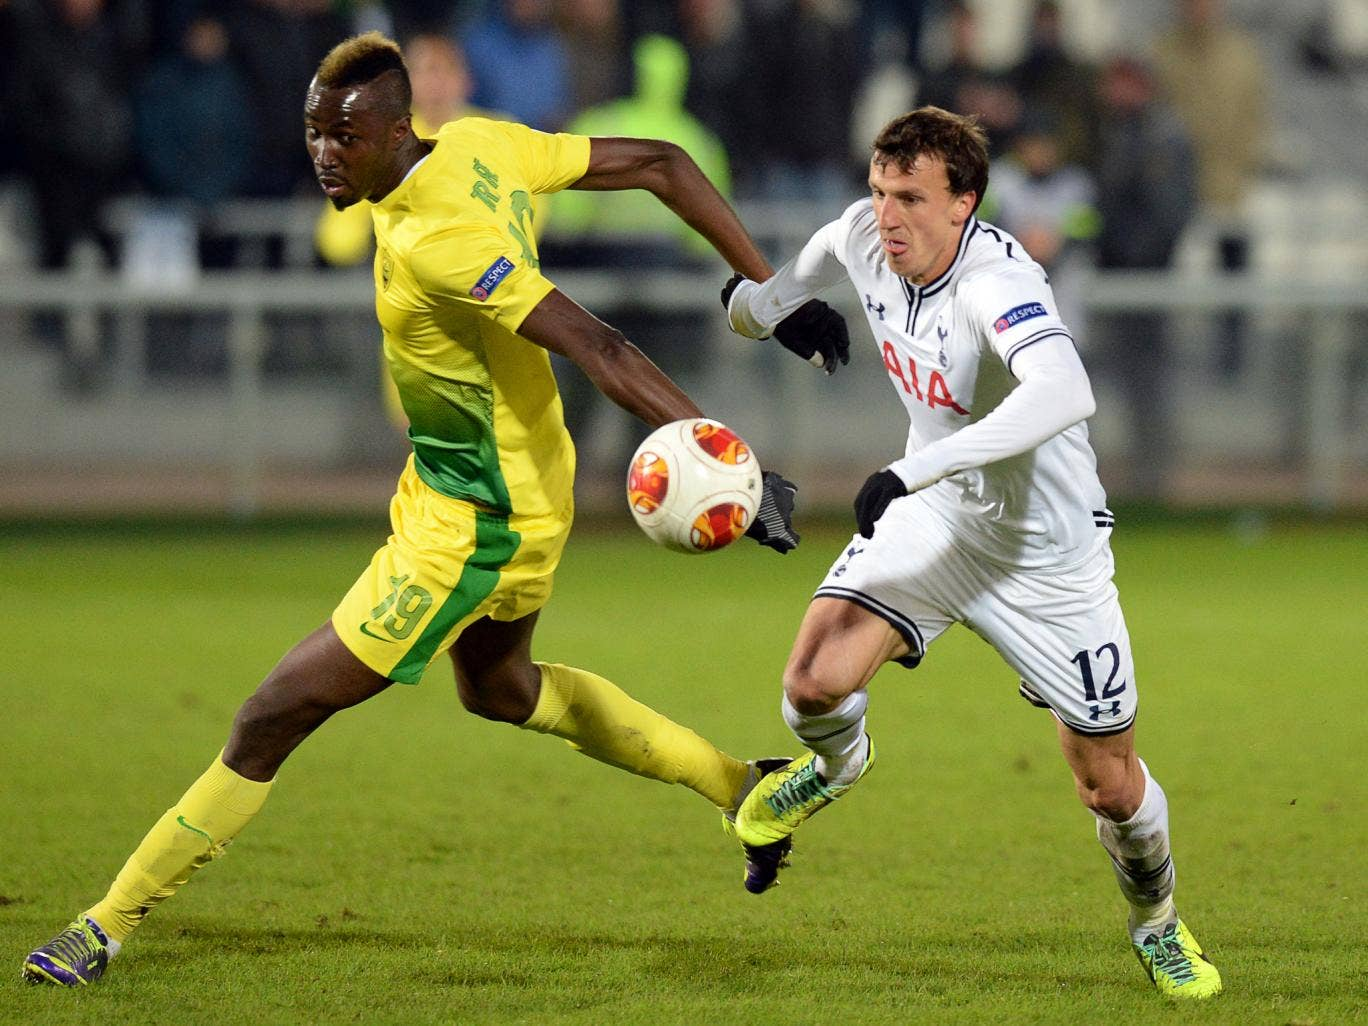 Vlad Chiriches of Tottenham dispossesses Lacina Traore of Anzhi Makhachkala